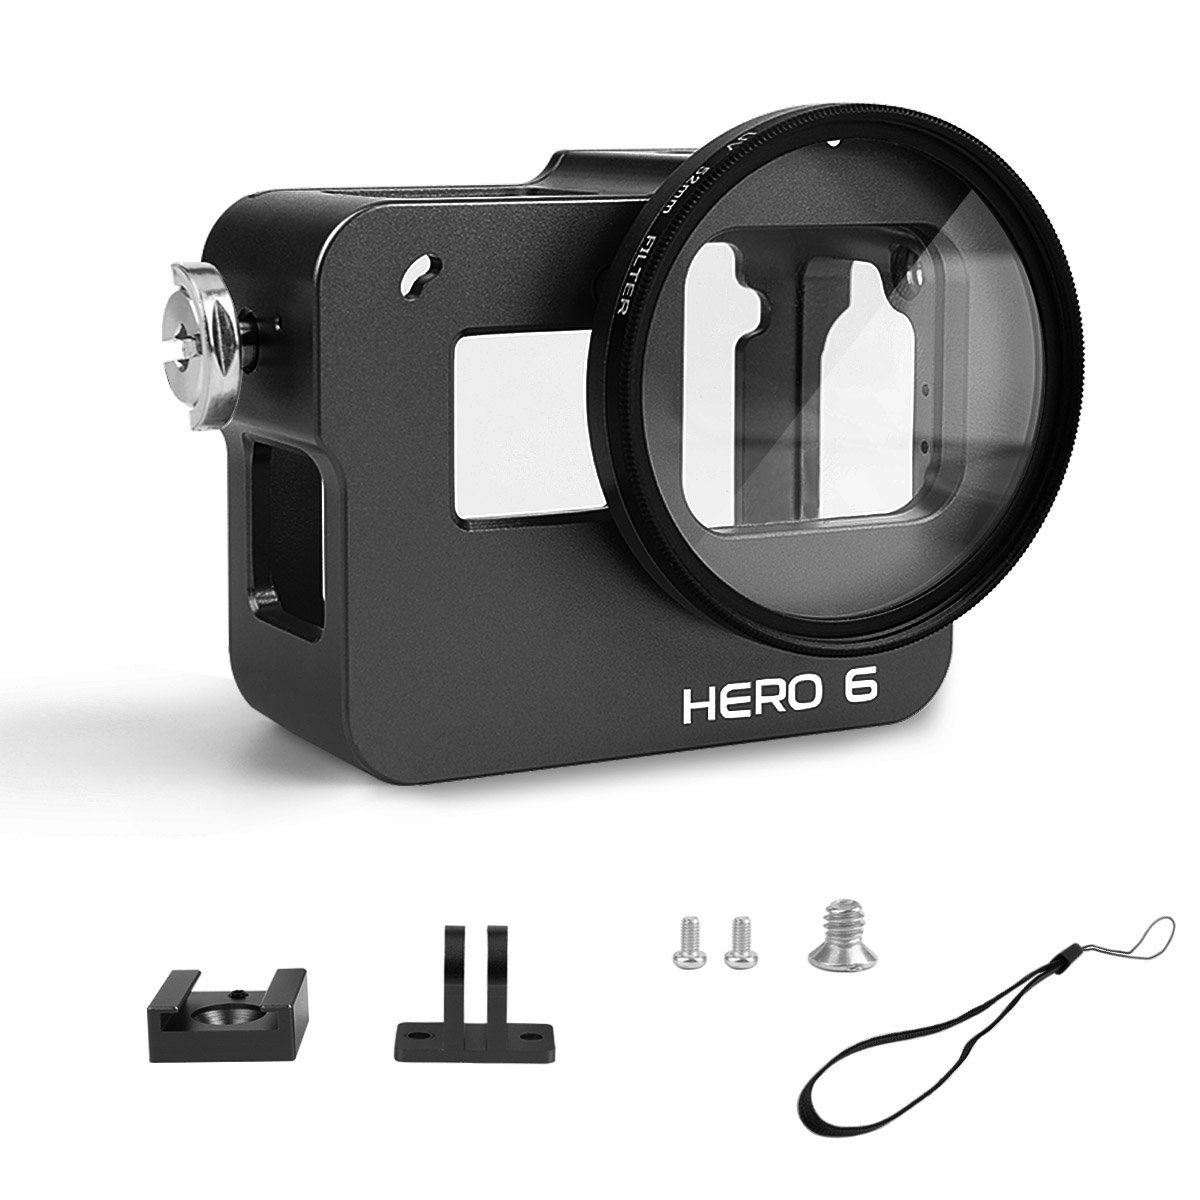 Luxebell Aluminium Alloy Skeleton Thick Solid Protective Case Shell with 52mm Uv Filter for Gopro Hero 6 5 Black, Silver Camera - Wide Angle Mode Have No Vignetting Black